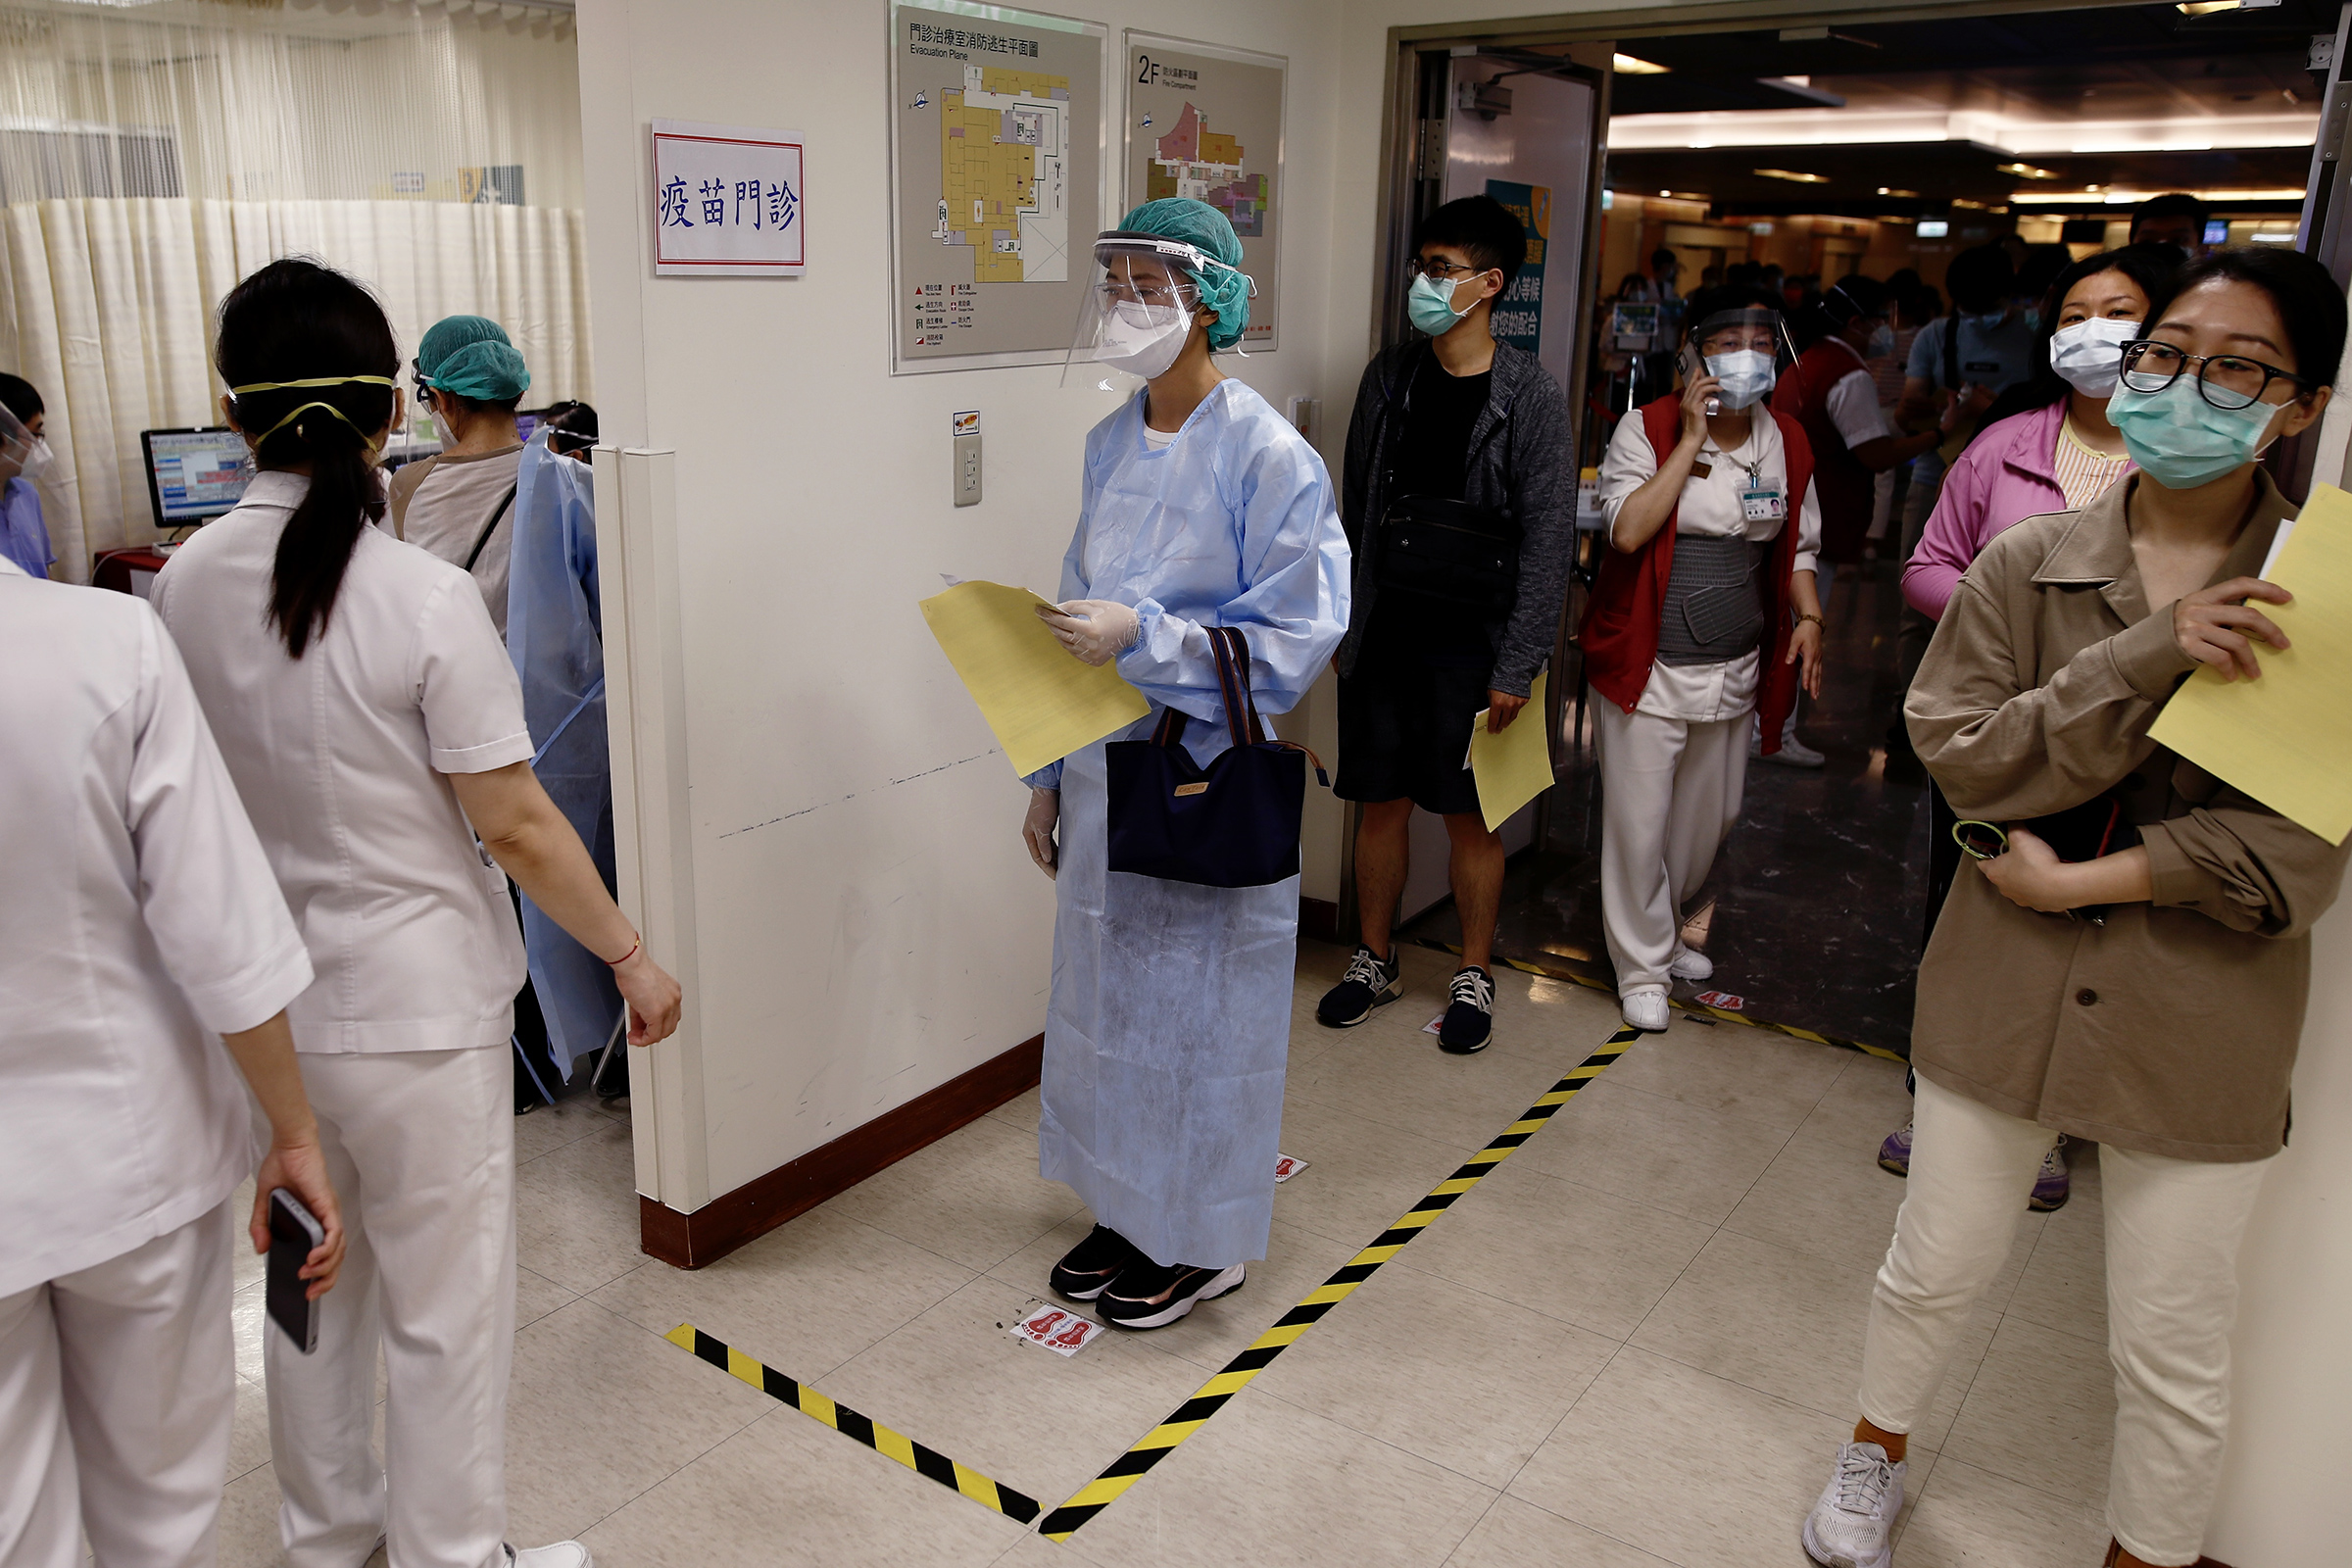 Medical workers wait to receive the AstraZeneca COVID-19 vaccine at a hospital in New Taipei on May 20. Hundreds of frontline workers received the vaccine amid the rising number of cases in Taiwan.